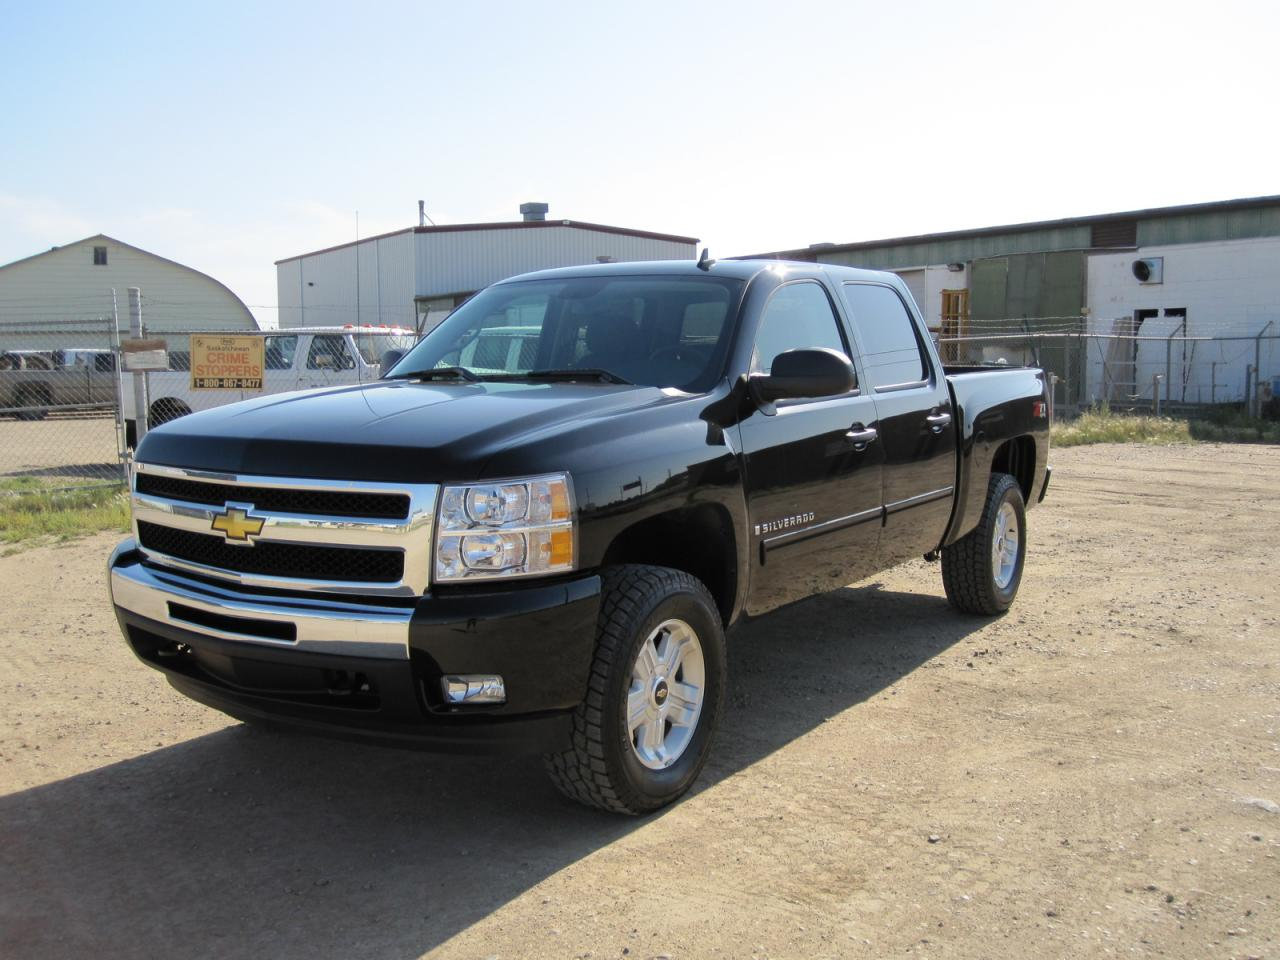 Image 19 Of 50 Chevrolet Silverado 1500 Hybrid Price 1961 Chevy Truck Crew Cab 2009 Information And